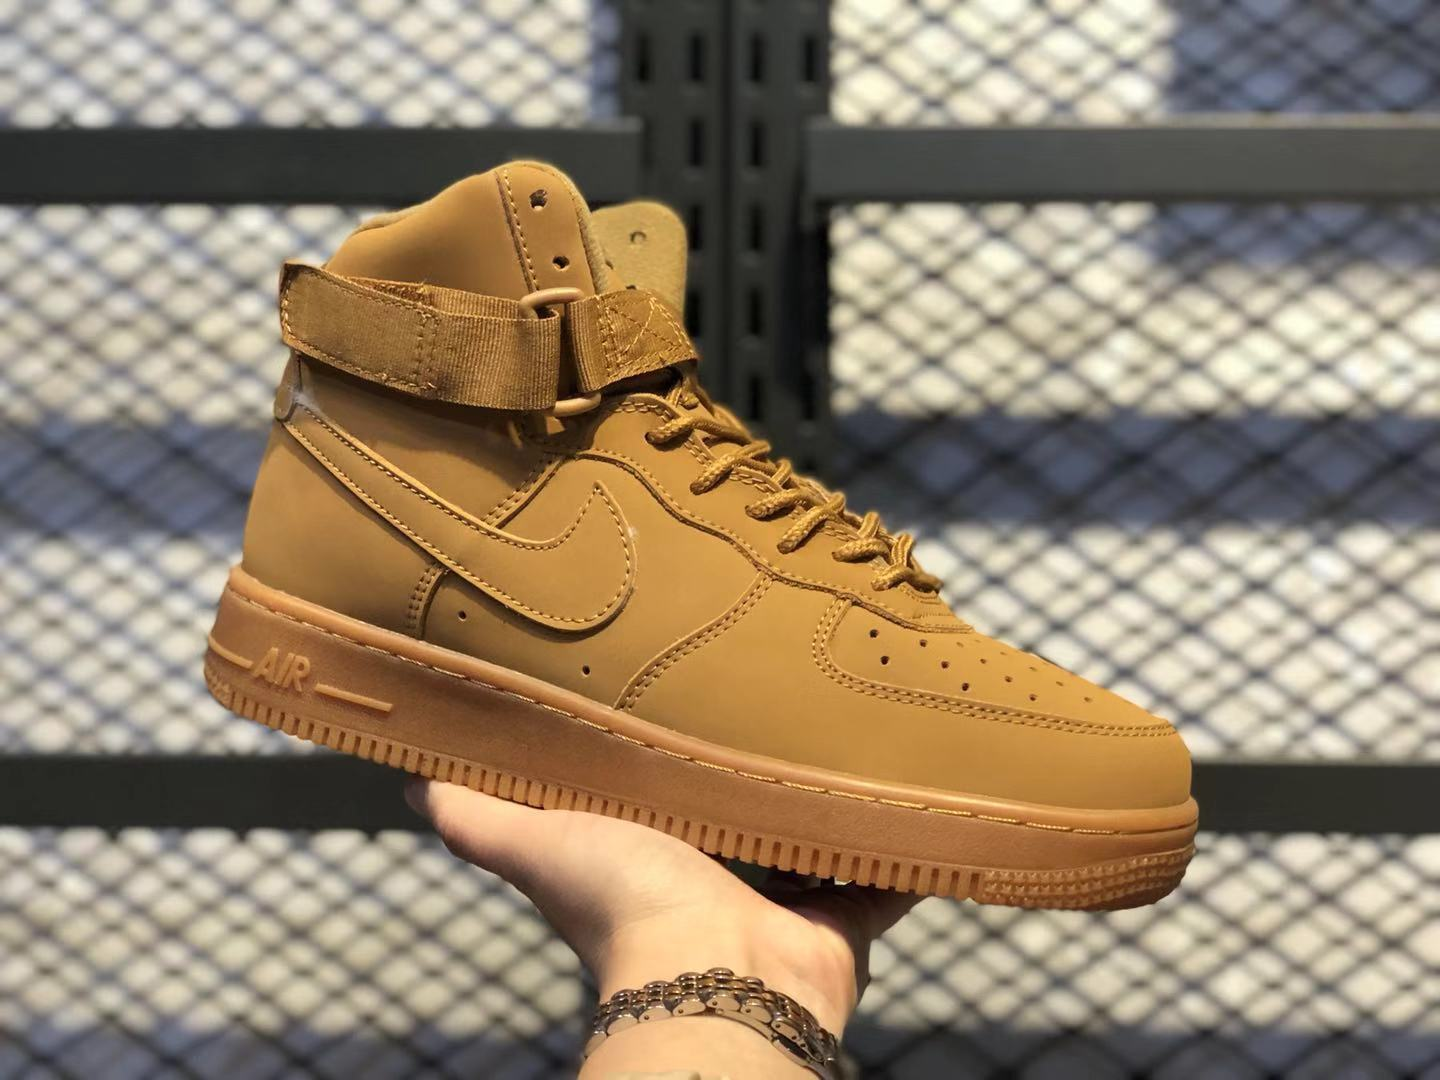 Nike Air Force 1 High 07 LV8 Flax/Flax-Outdoor Green Sneakers Cheap Price